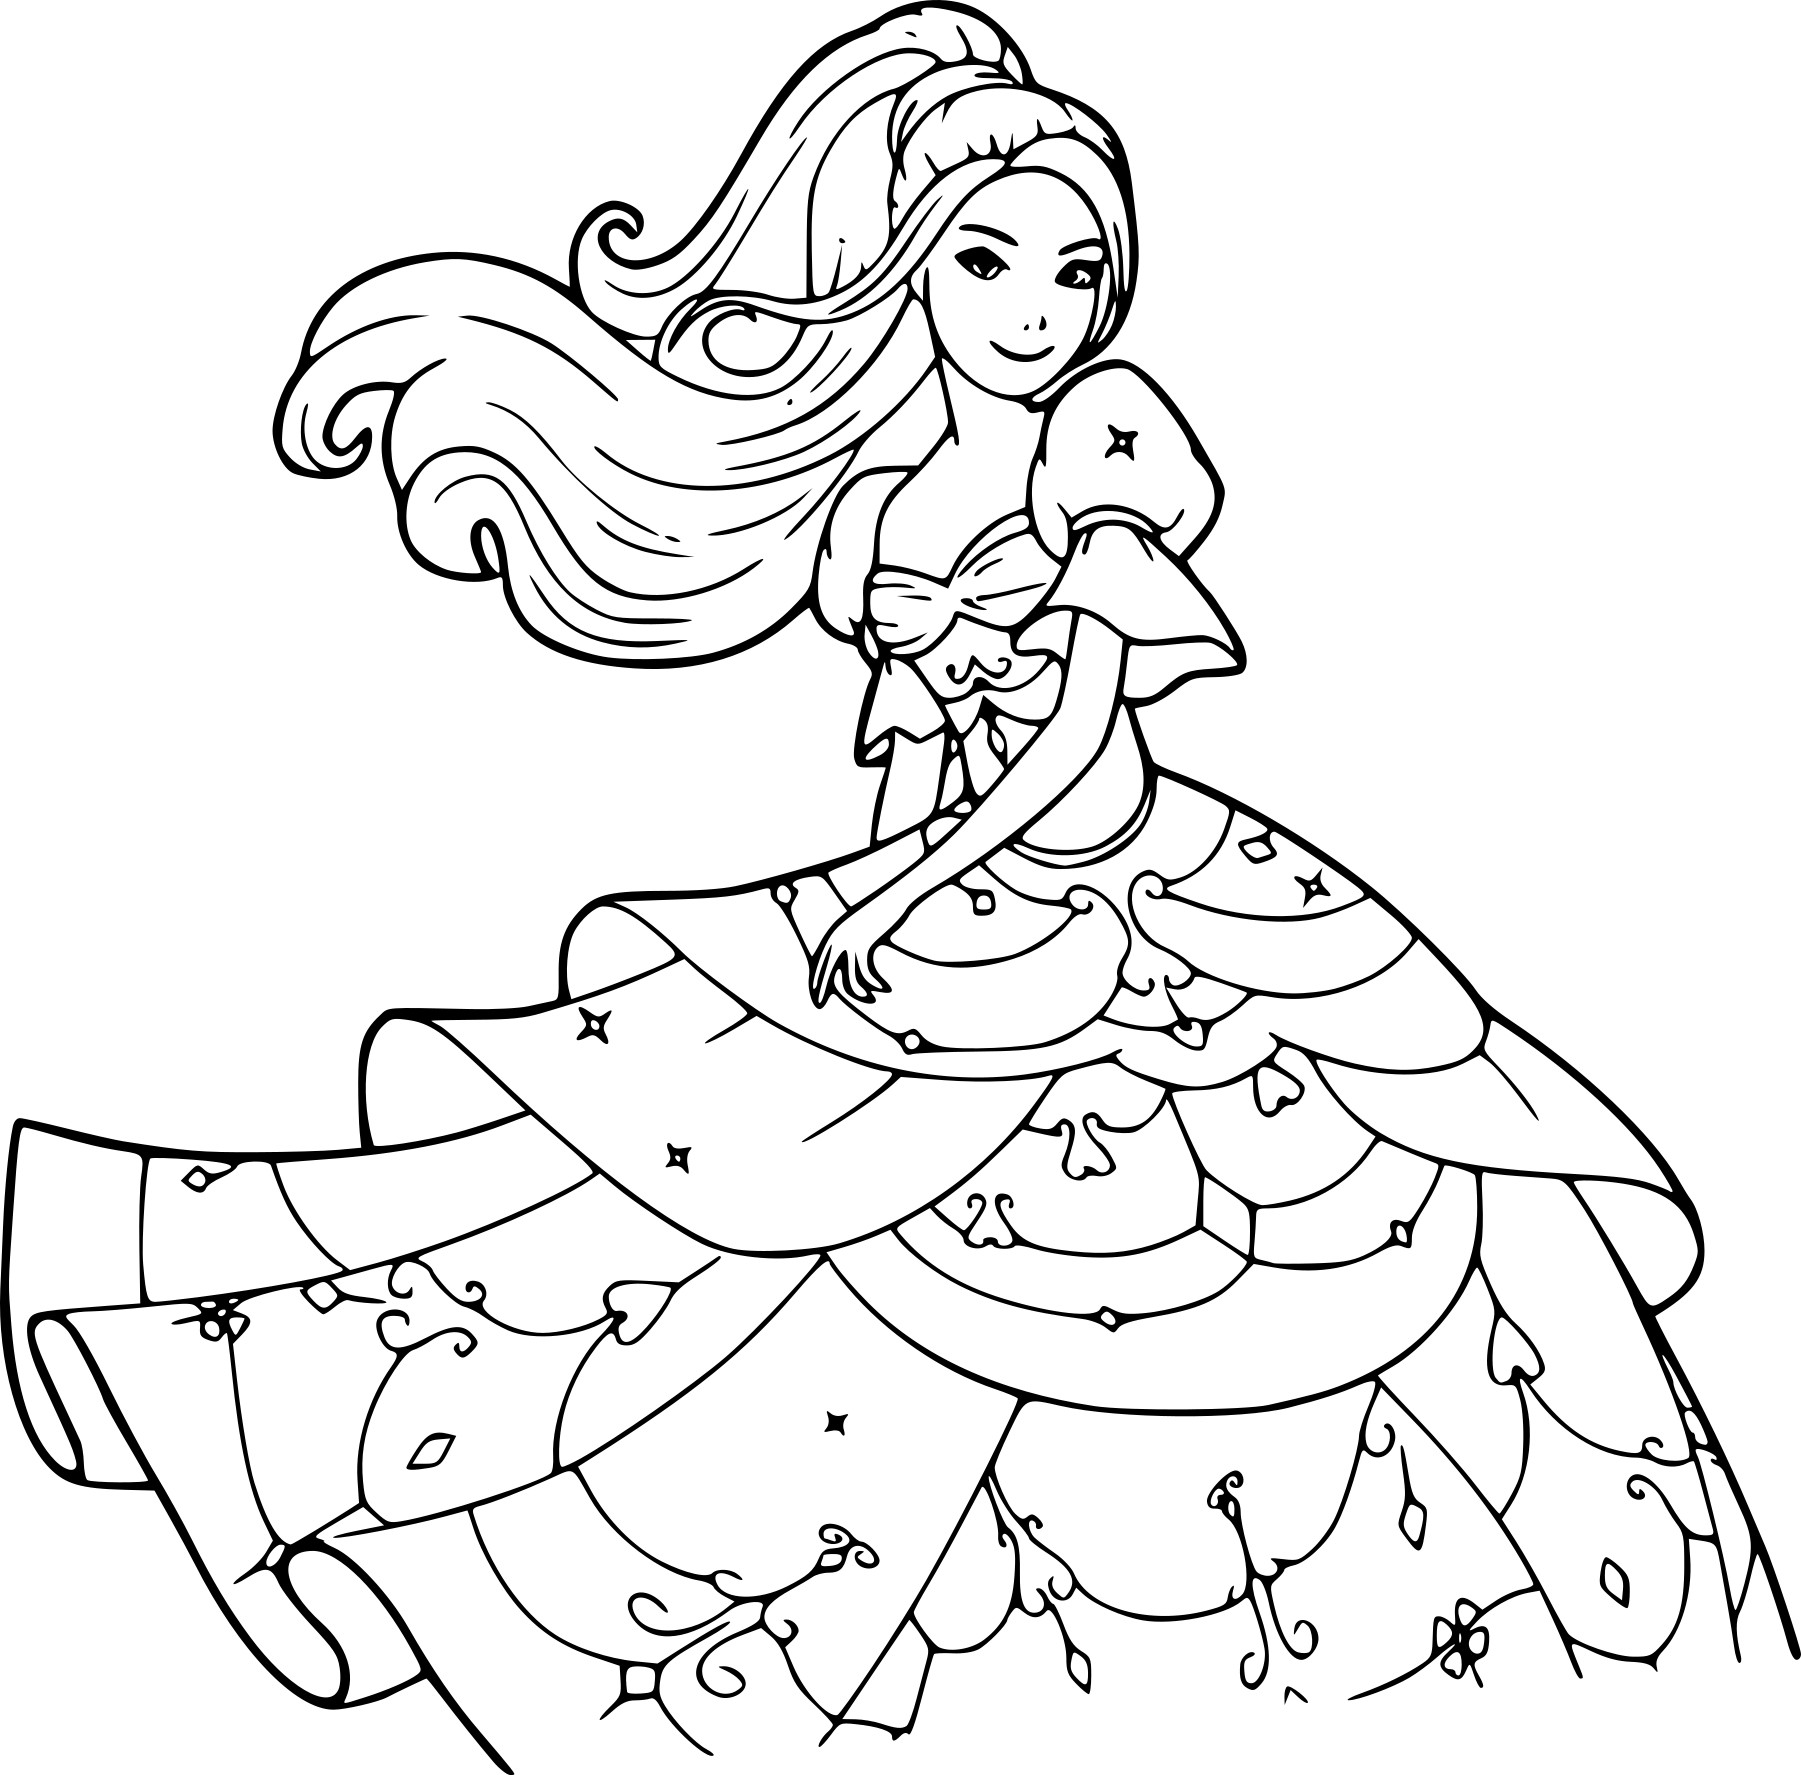 Coloriage de barbie princesse imprimer sur coloriage de com - Barbie princesse coloriage ...